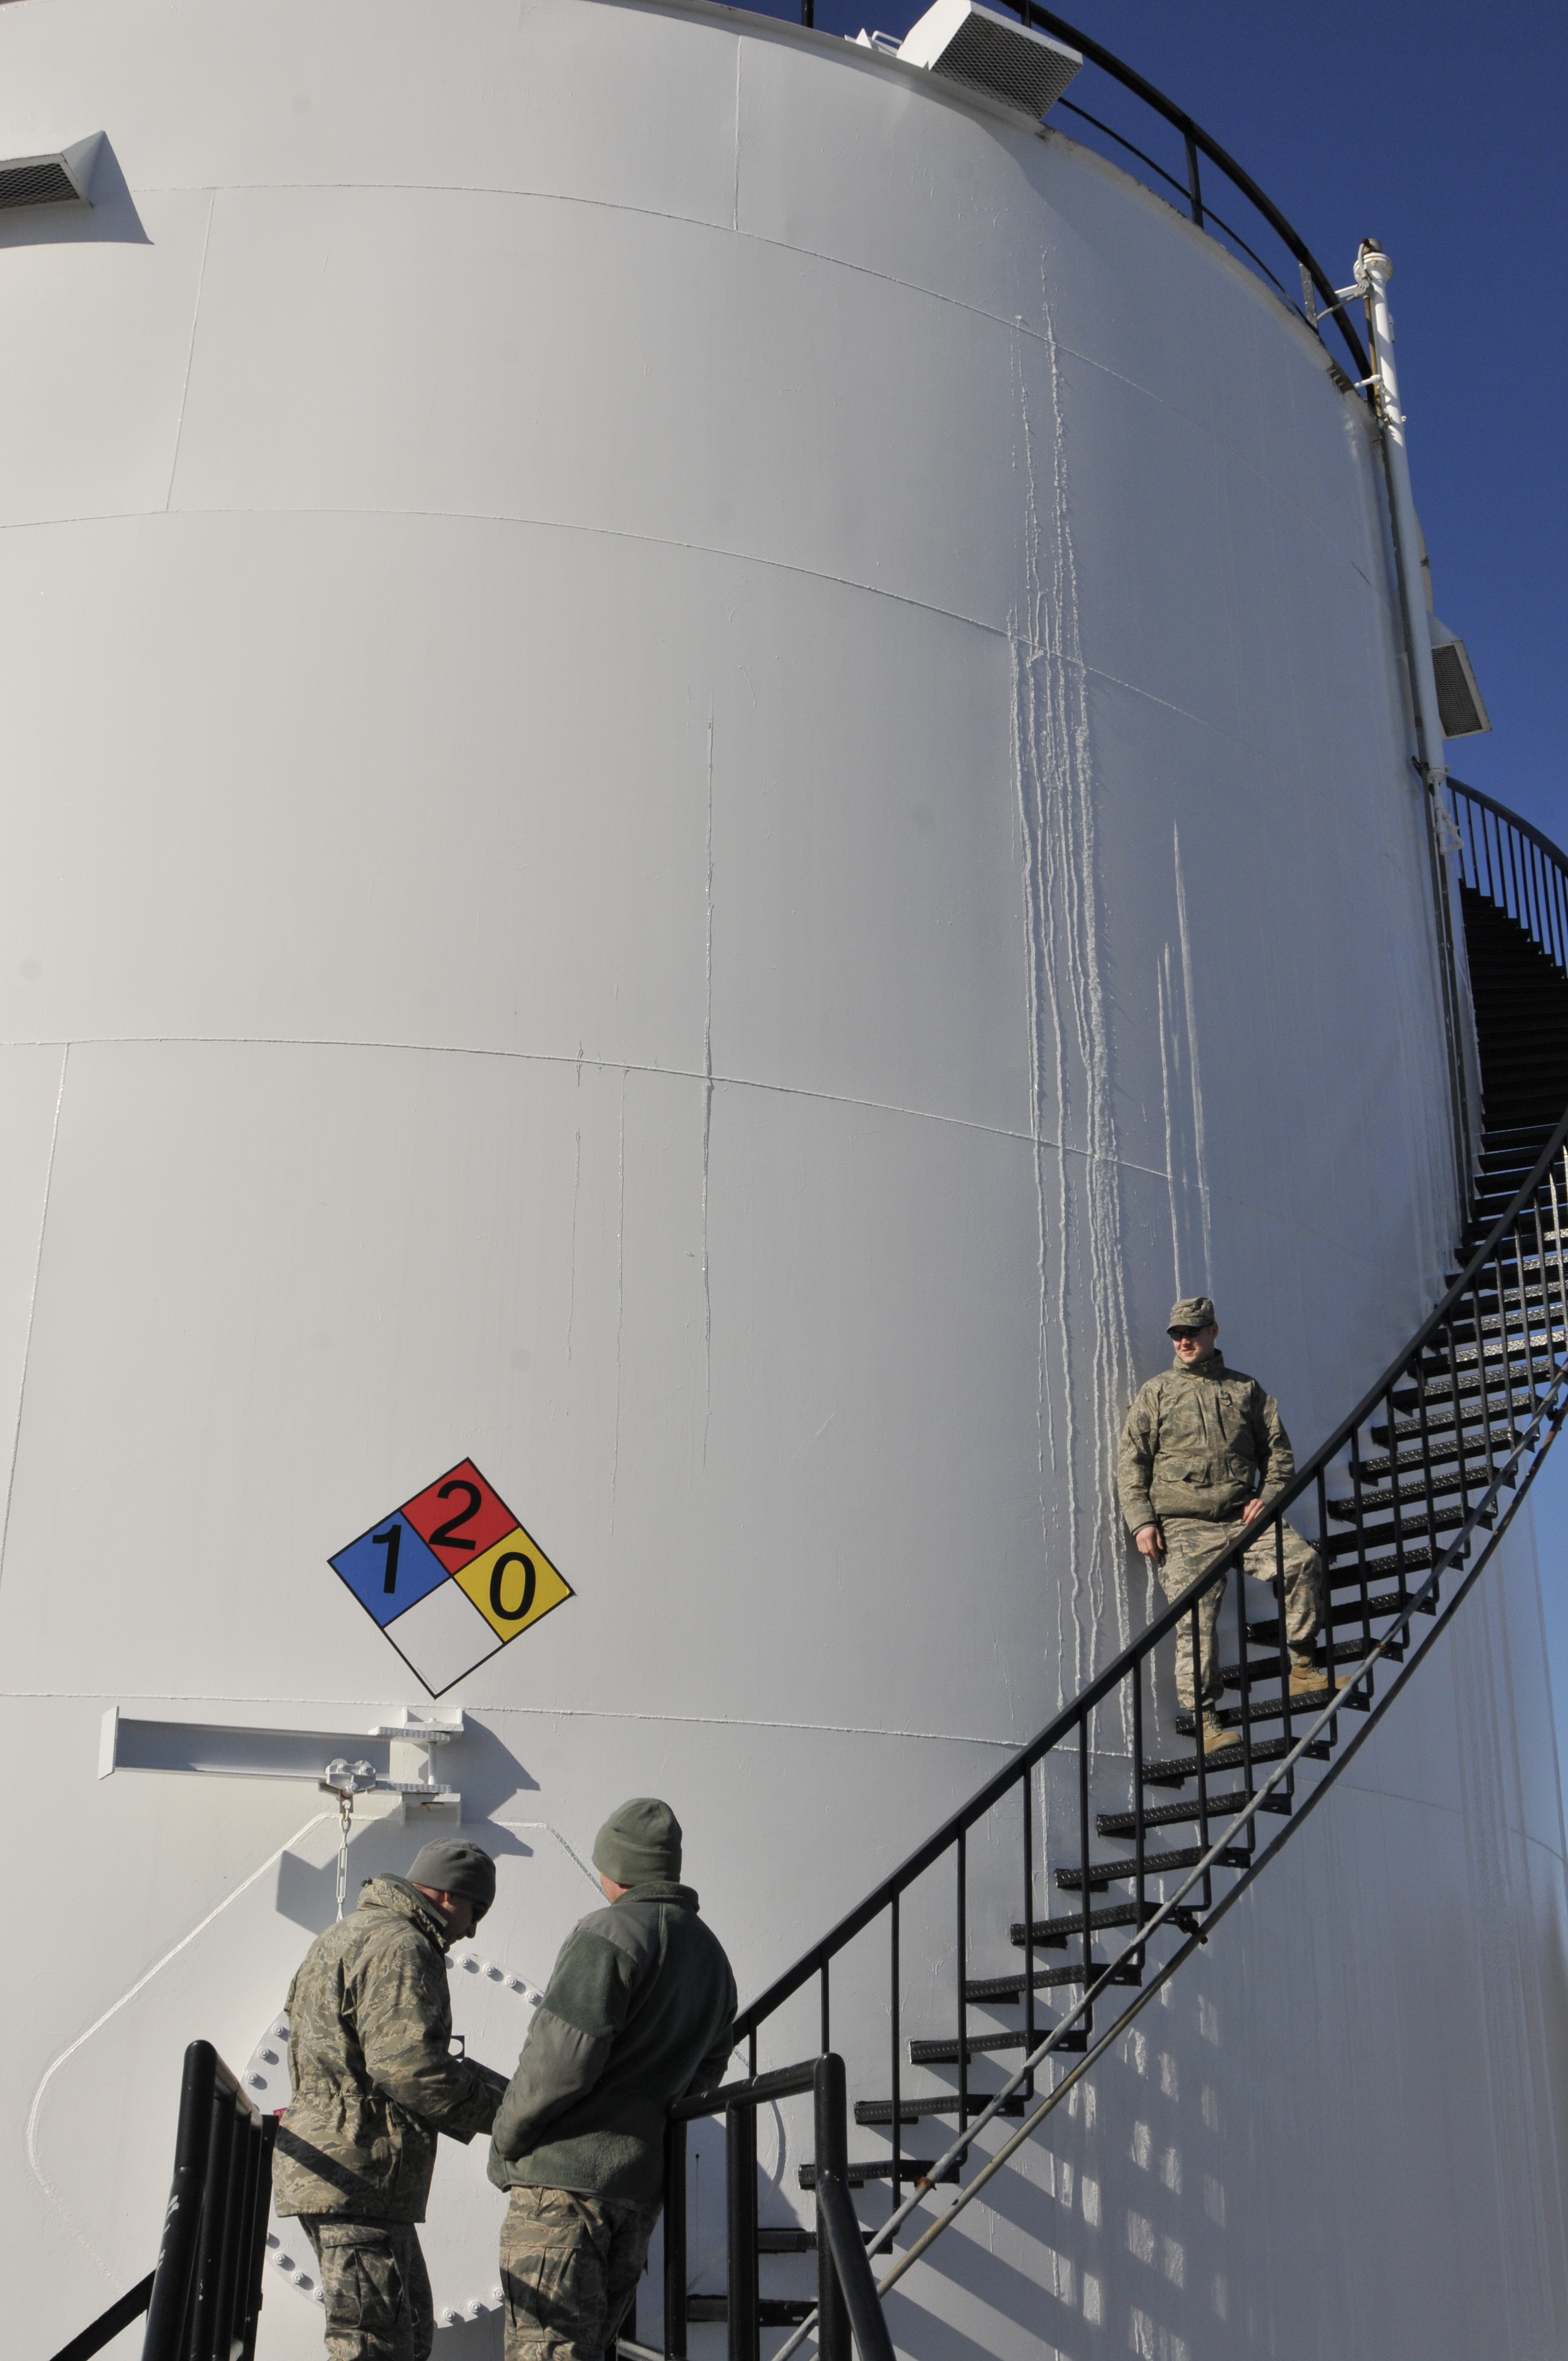 DLA Energy procured the fuel in this Bangor, Maine, fuel tank being inspected